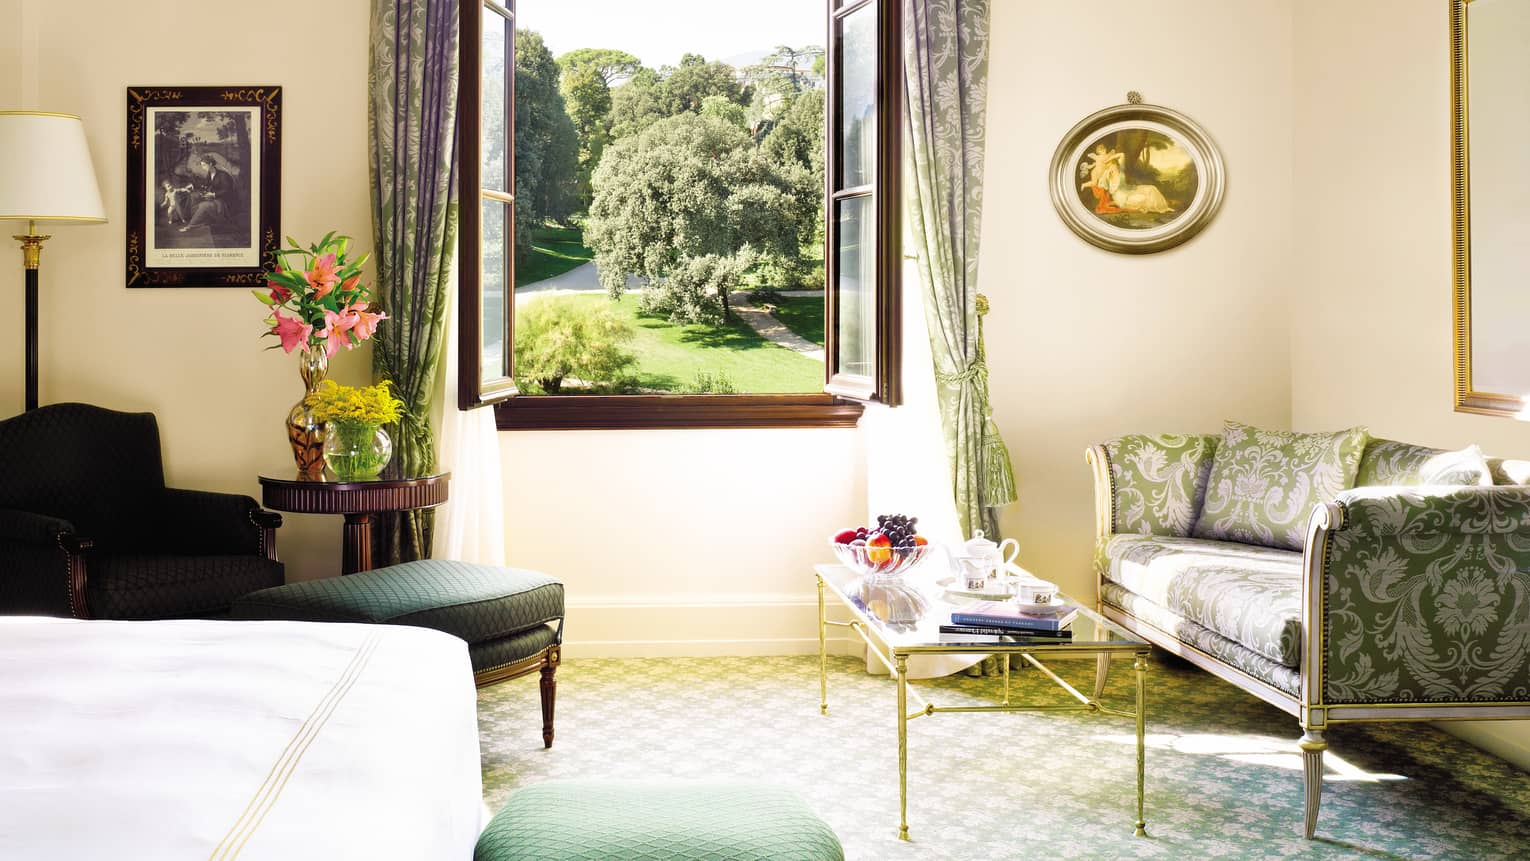 Four Seasons Room silk sofa, armchair, table under large open window overlooking gardens